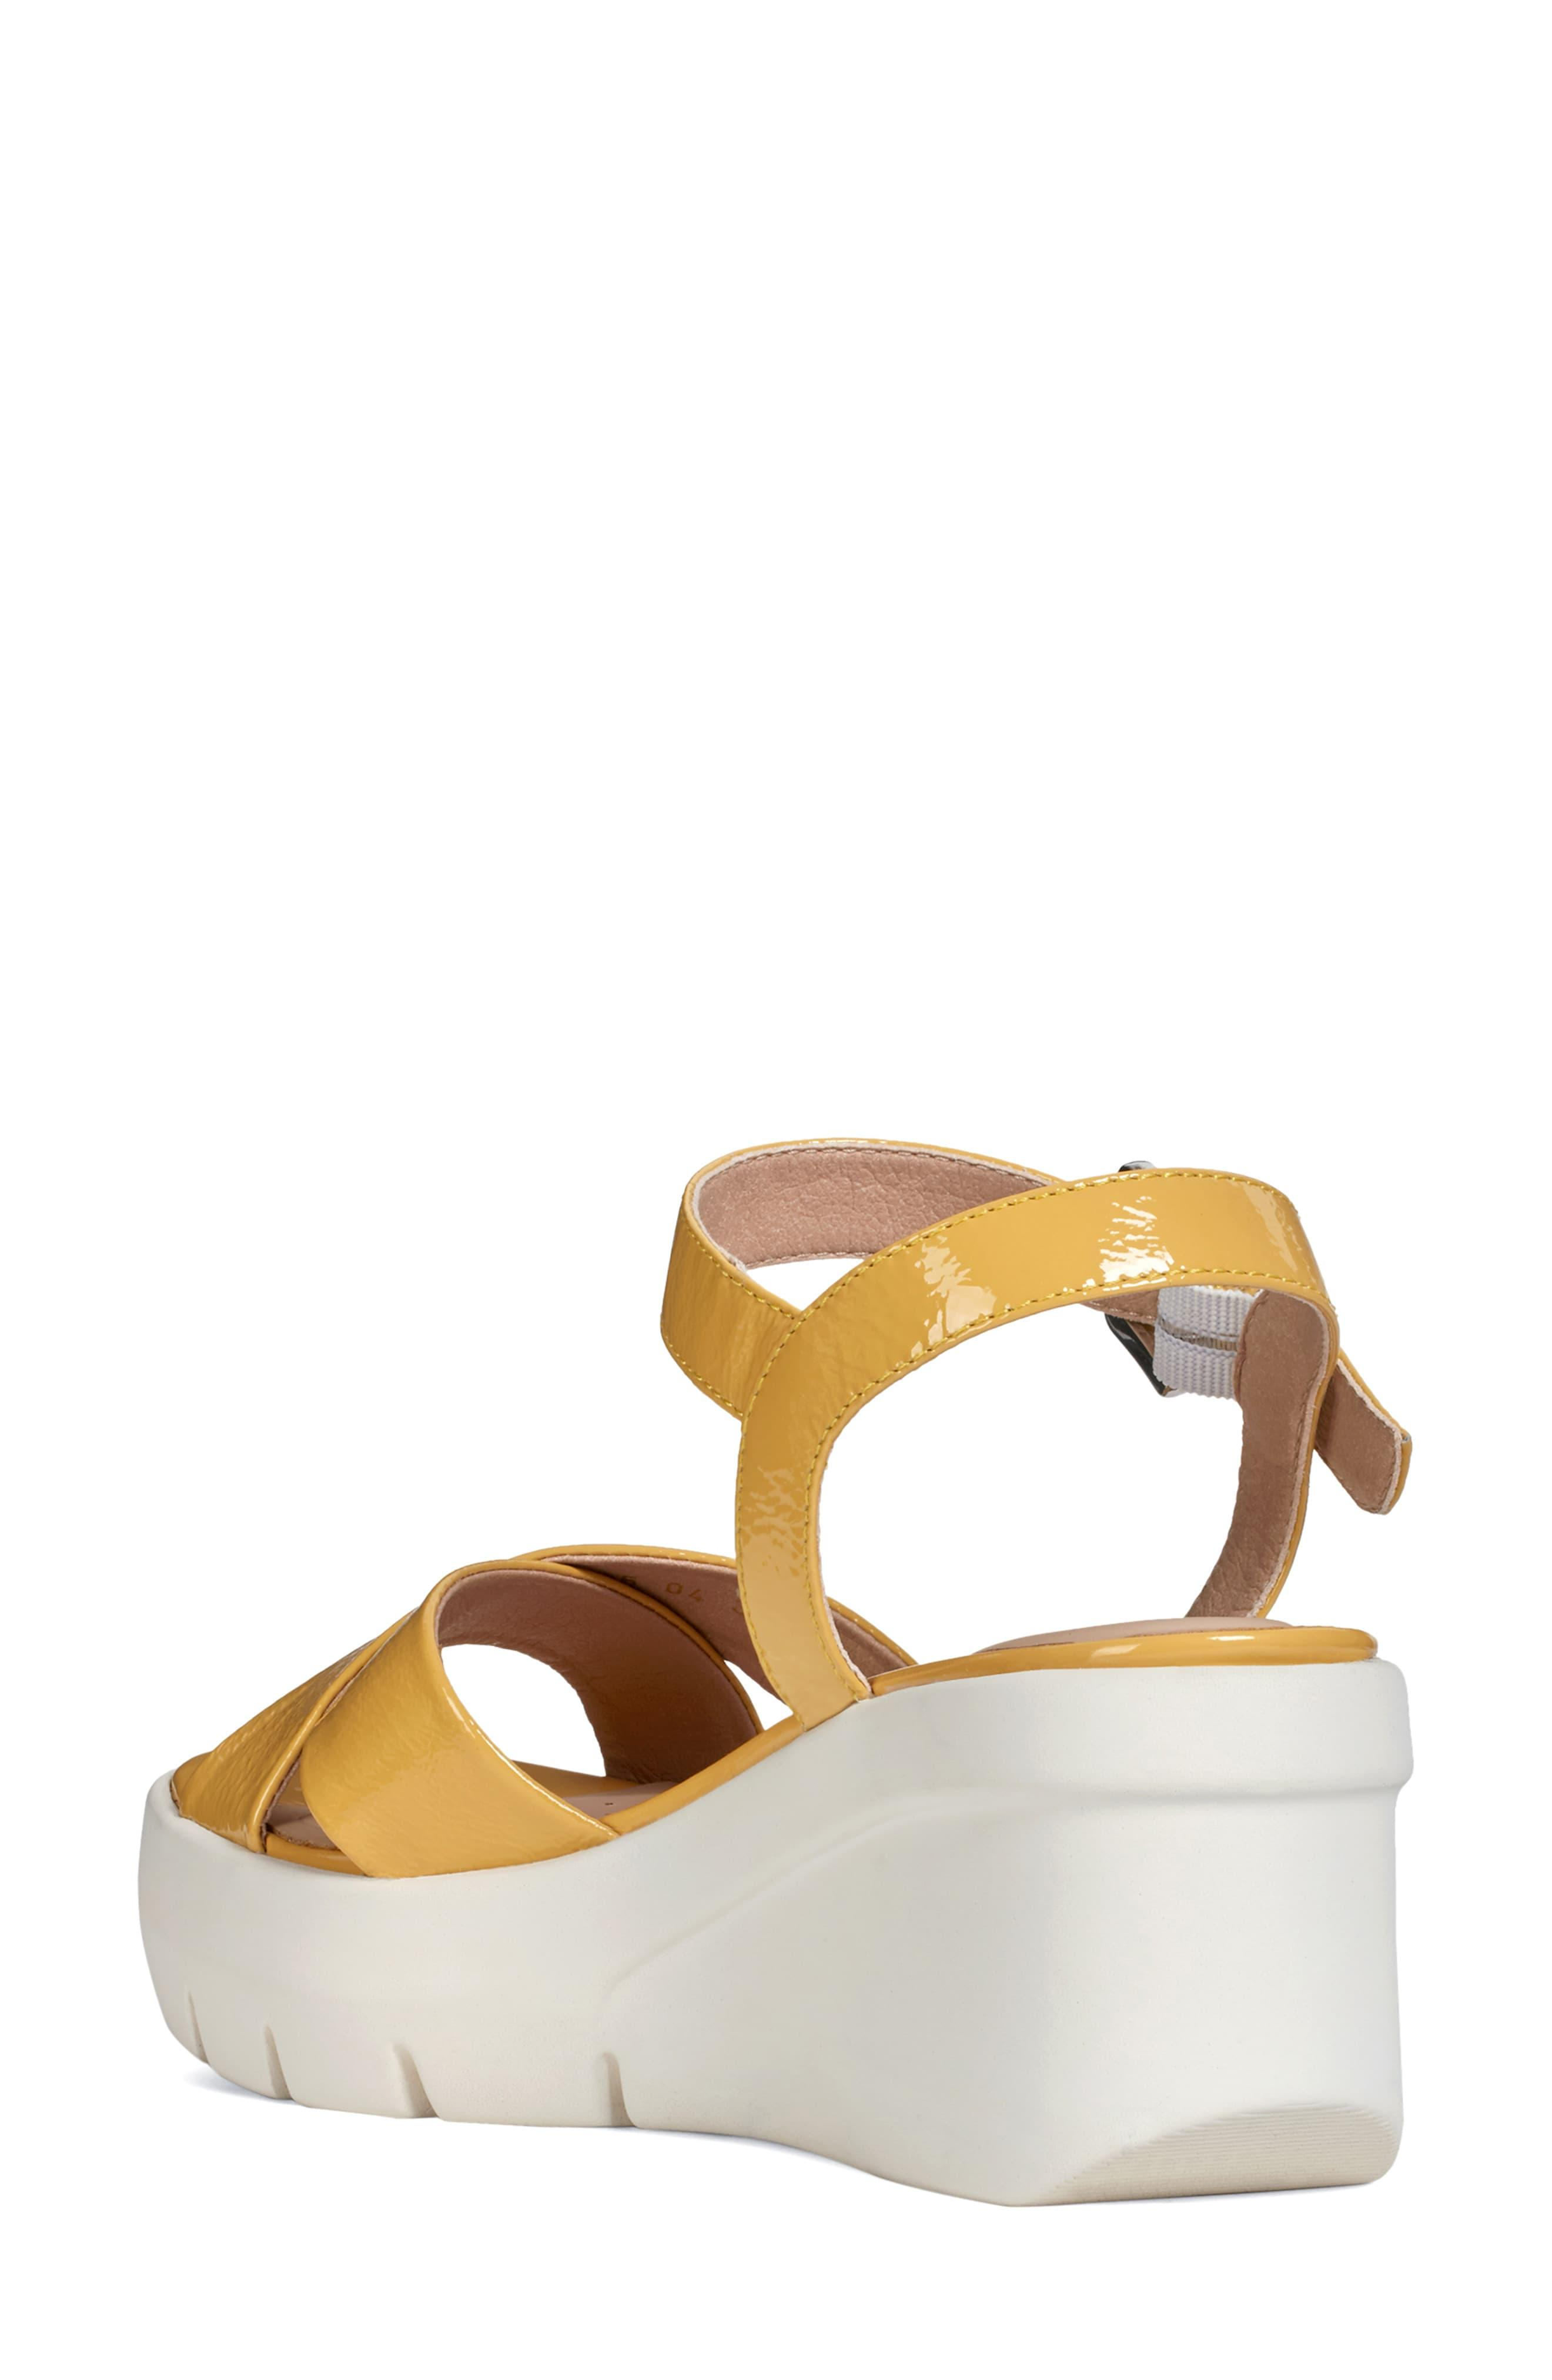 a1e57e84bf Geox Torrence Platform Sandal in Brown - Lyst